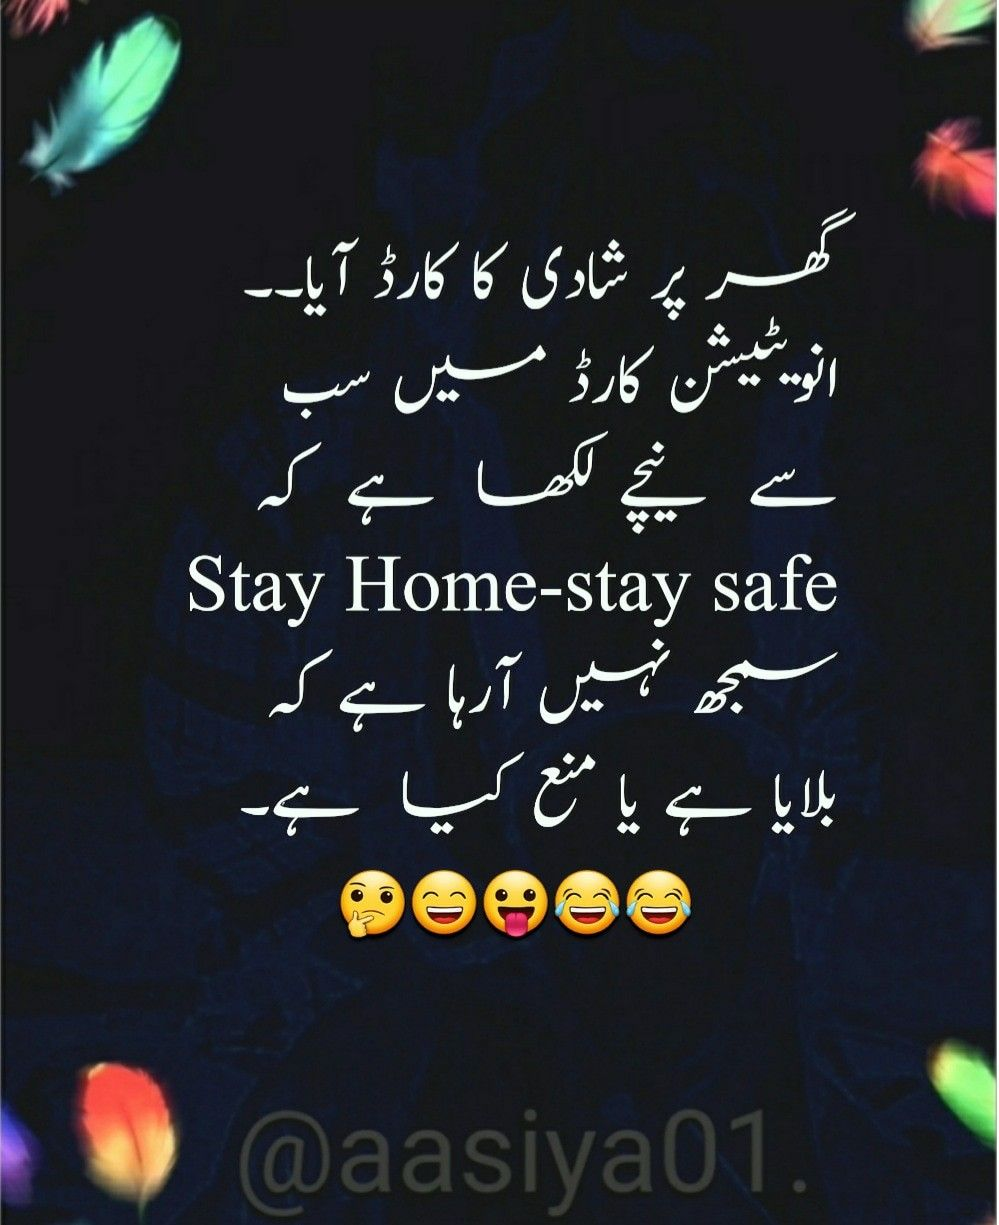 Pin By Abdullah Aziz On Aasiya01 Fun Quotes Funny Funny Joke Quote Smart Quotes Funny